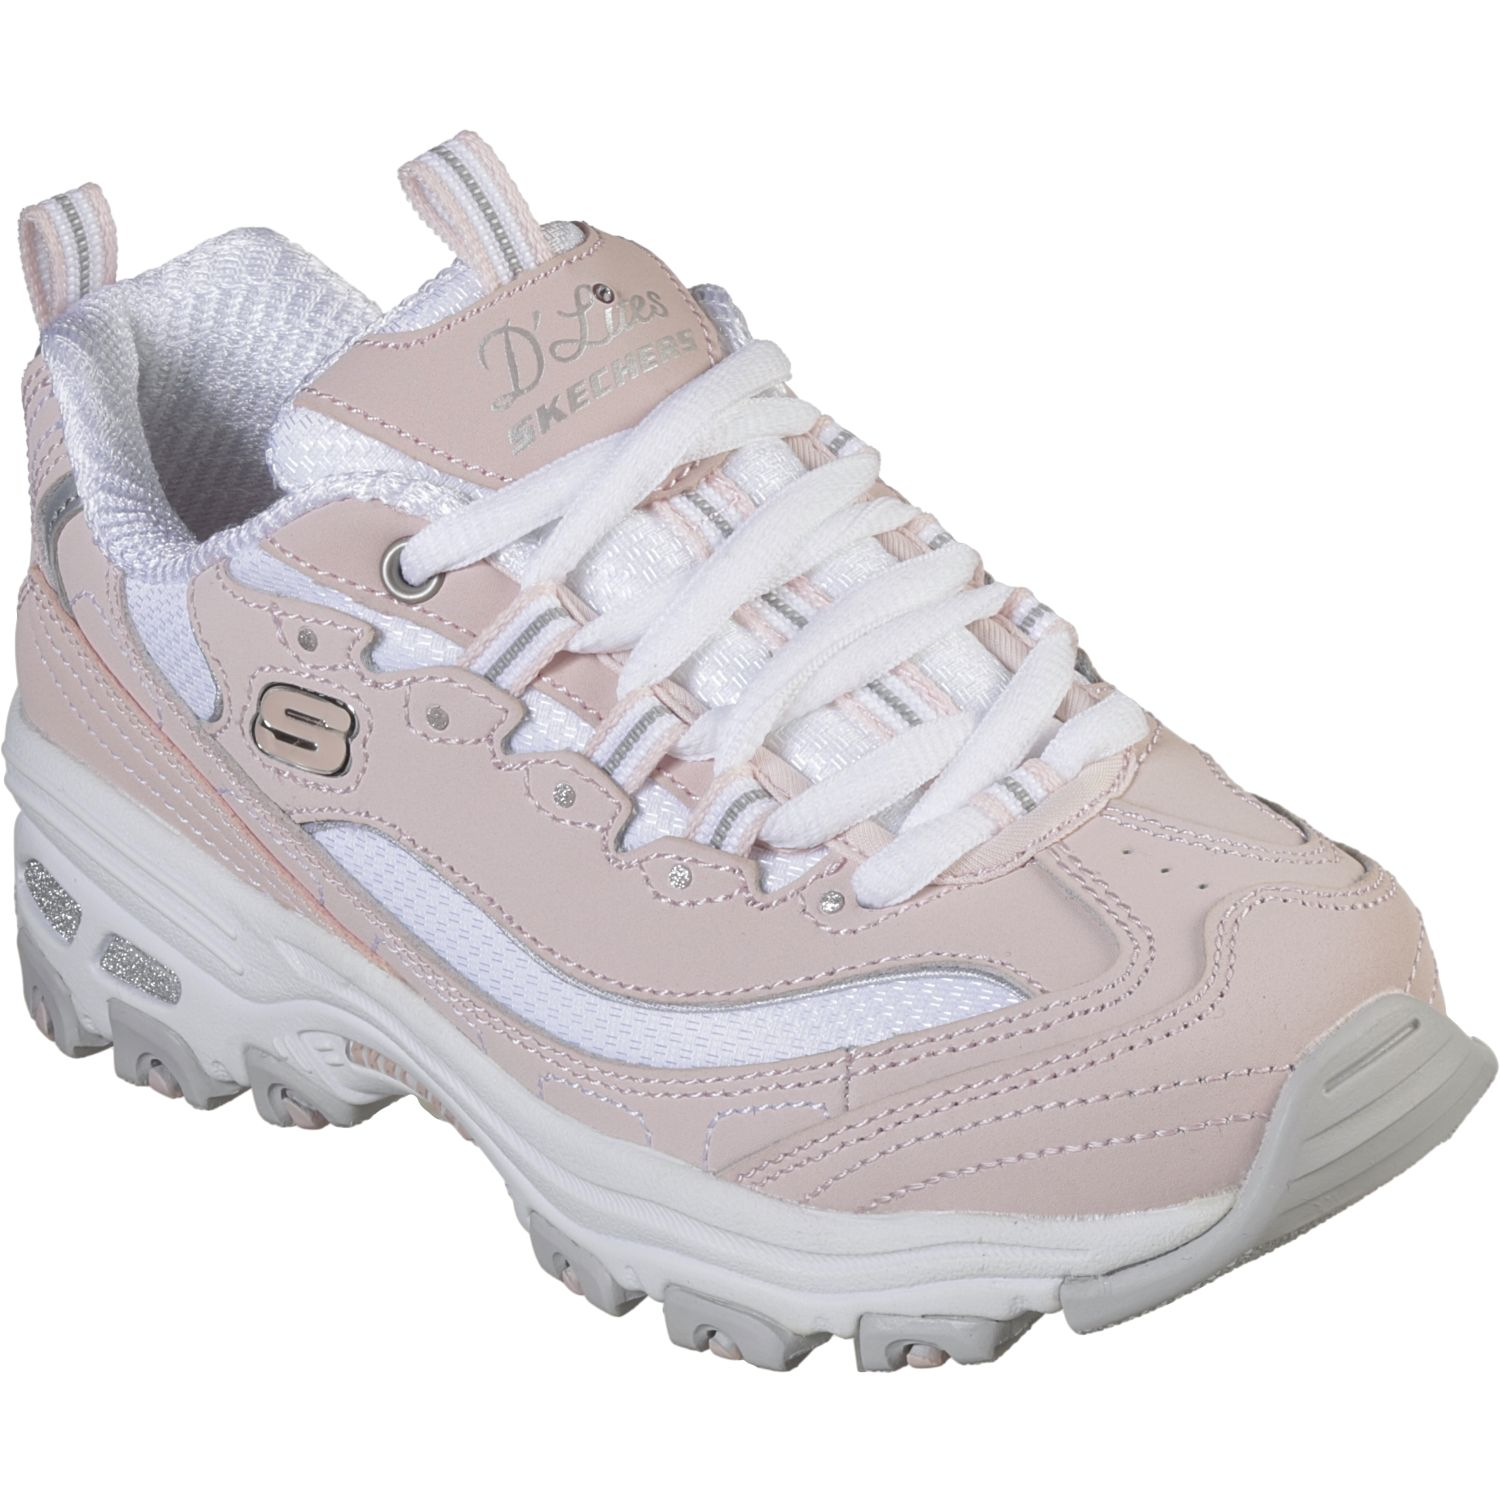 Skechers d'lites - biggest fan Rosado / blanco Walking